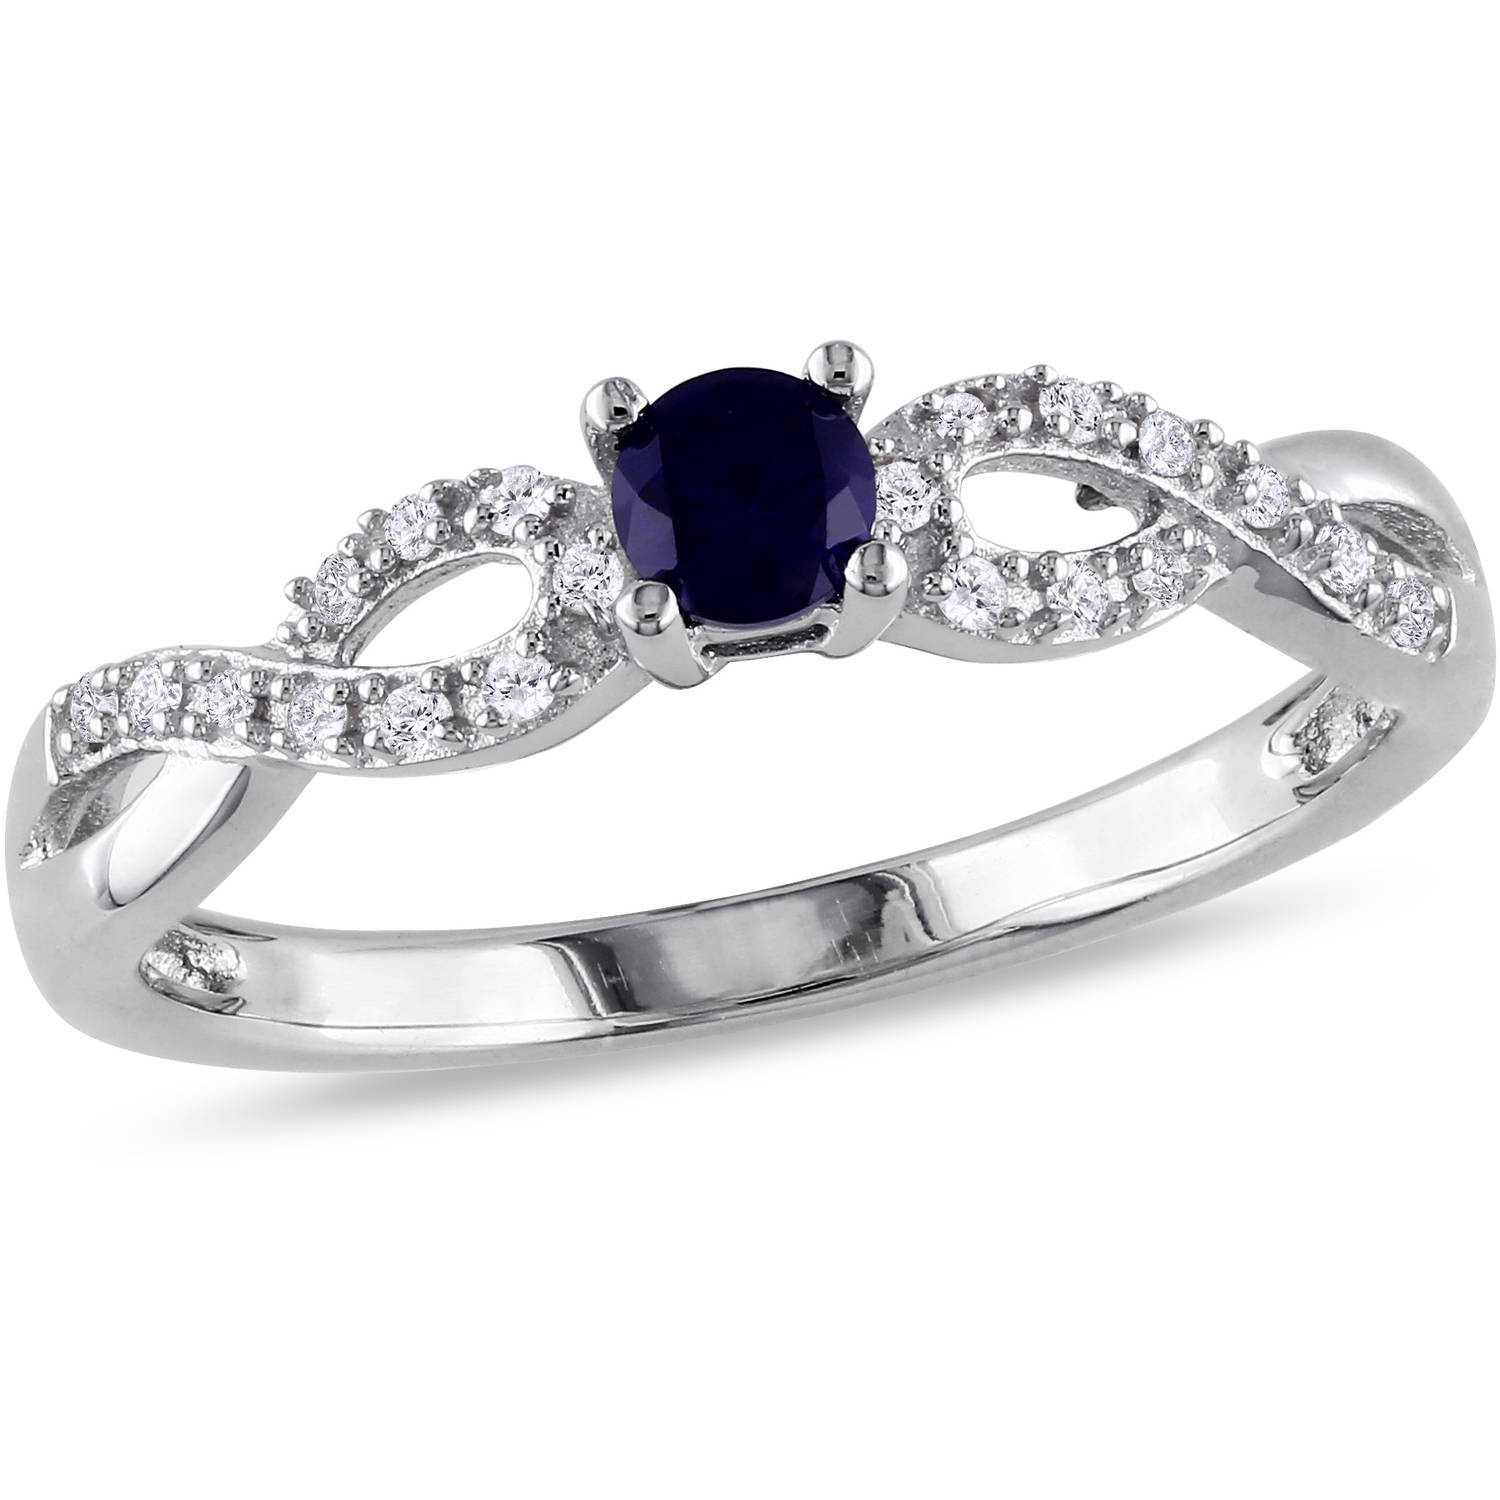 Tangelo 1 5 Carat T G W Created Blue Sapphire and Diamond Accent